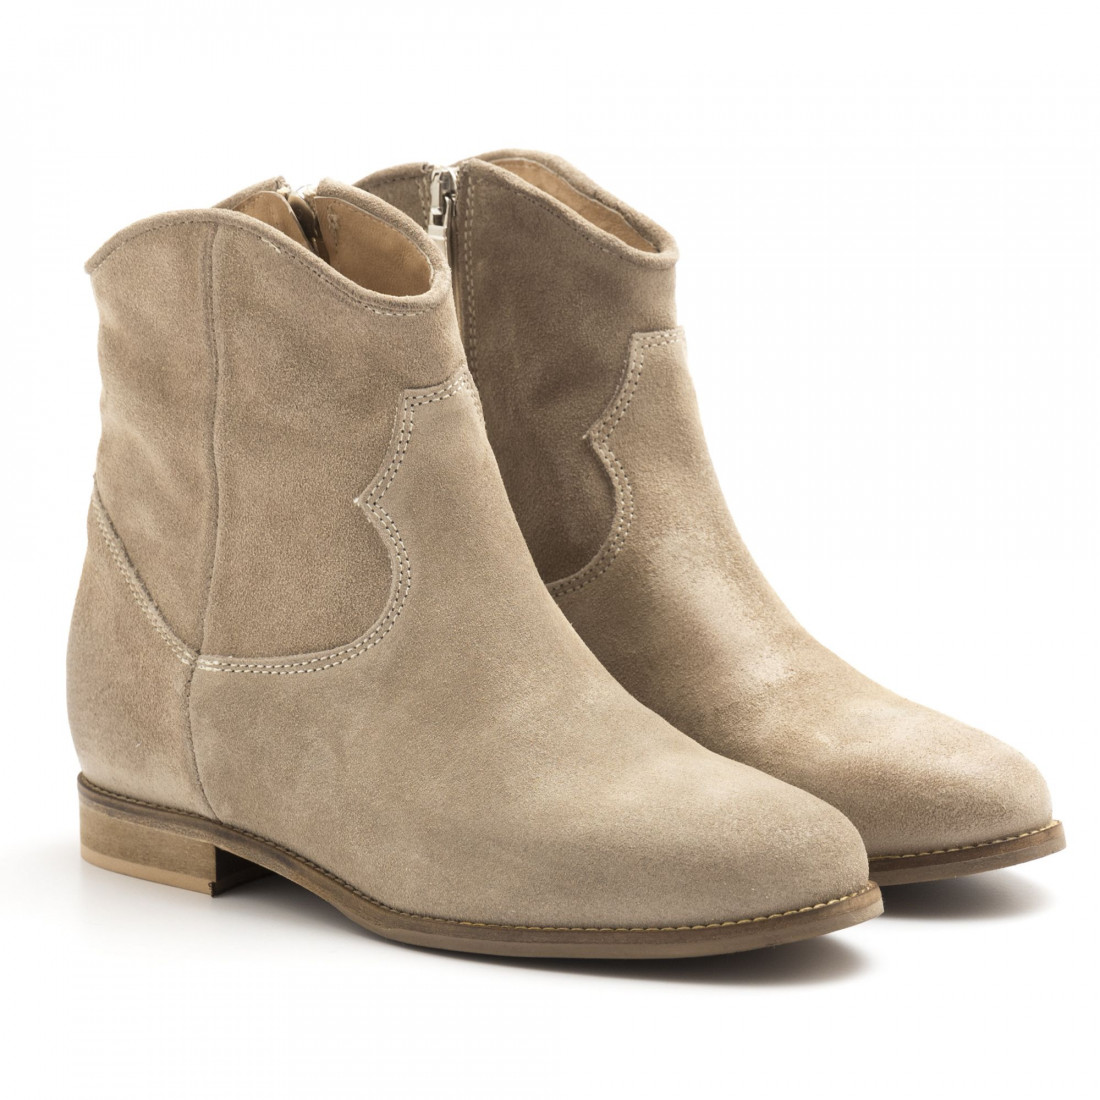 cdcf0b1359f1 Internal wedge Keb ankle boots in taupe suede